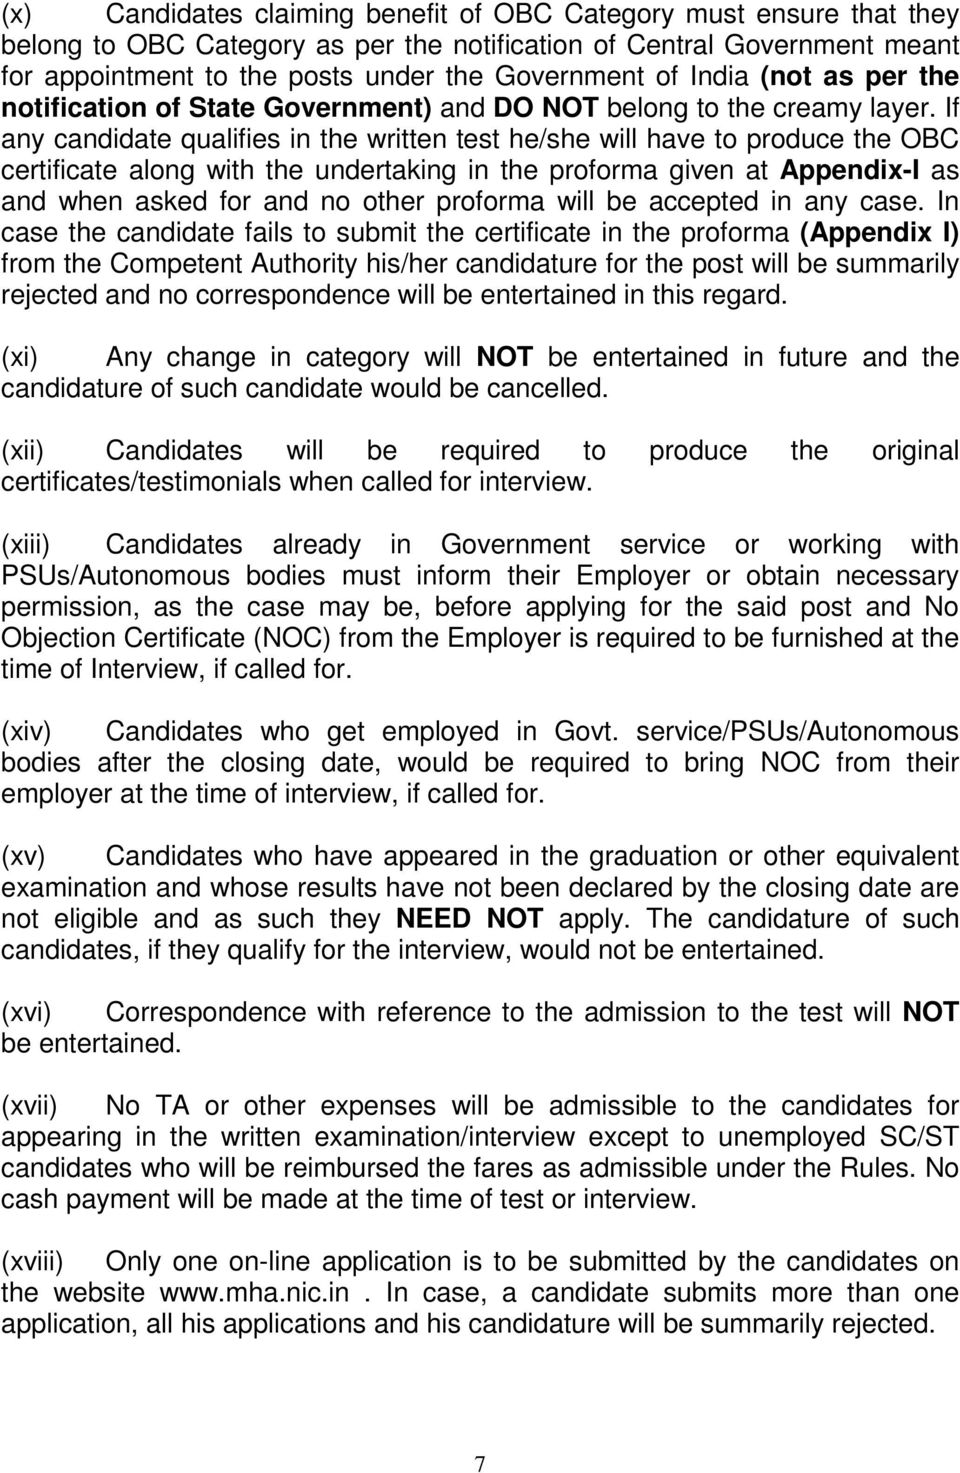 If any candidate qualifies in the written test he/she will have to produce the OBC certificate along with the undertaking in the proforma given at Appendix-I as and when asked for and no other